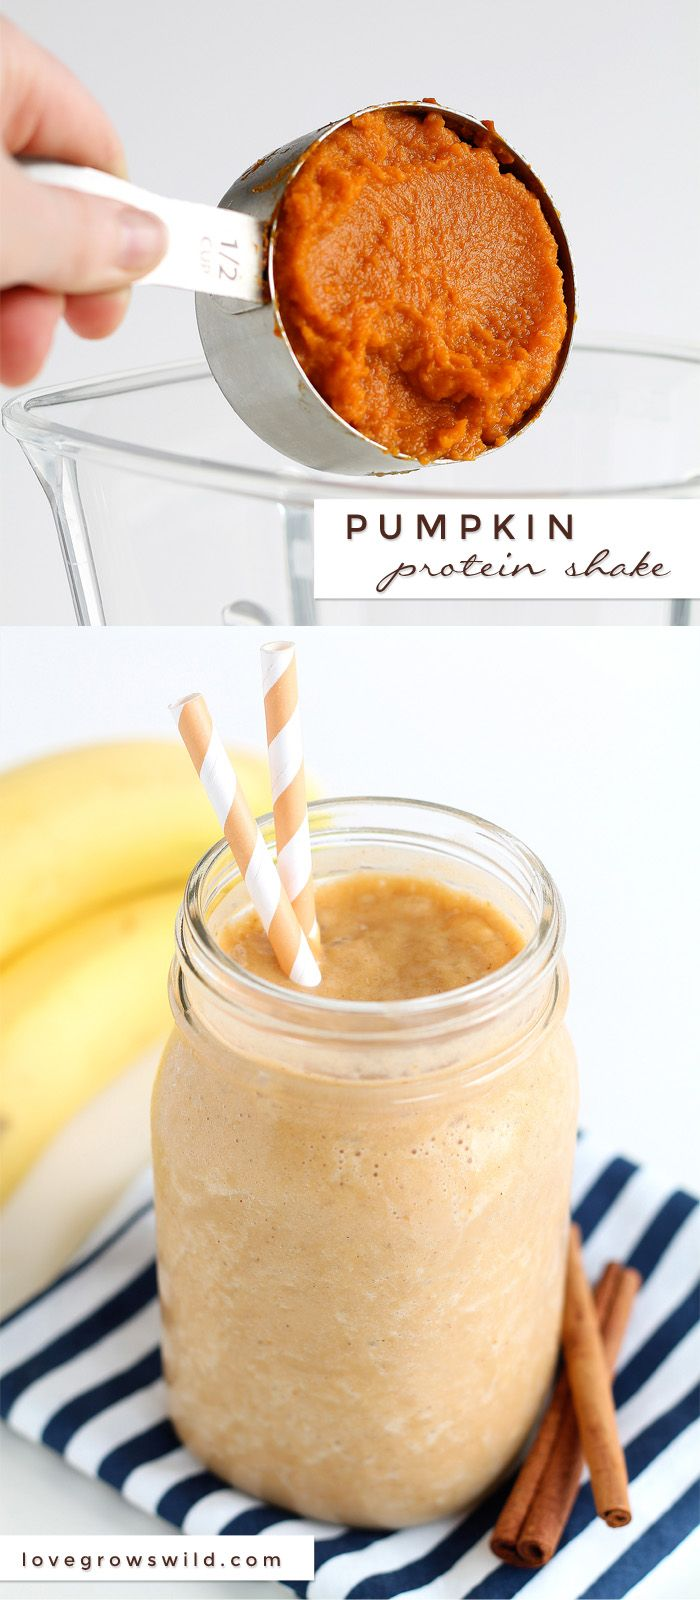 Turn your protein shake into a delicious pumpkin treat! Healthy, satisfying, and super tasty!   LoveGrowsWild.com